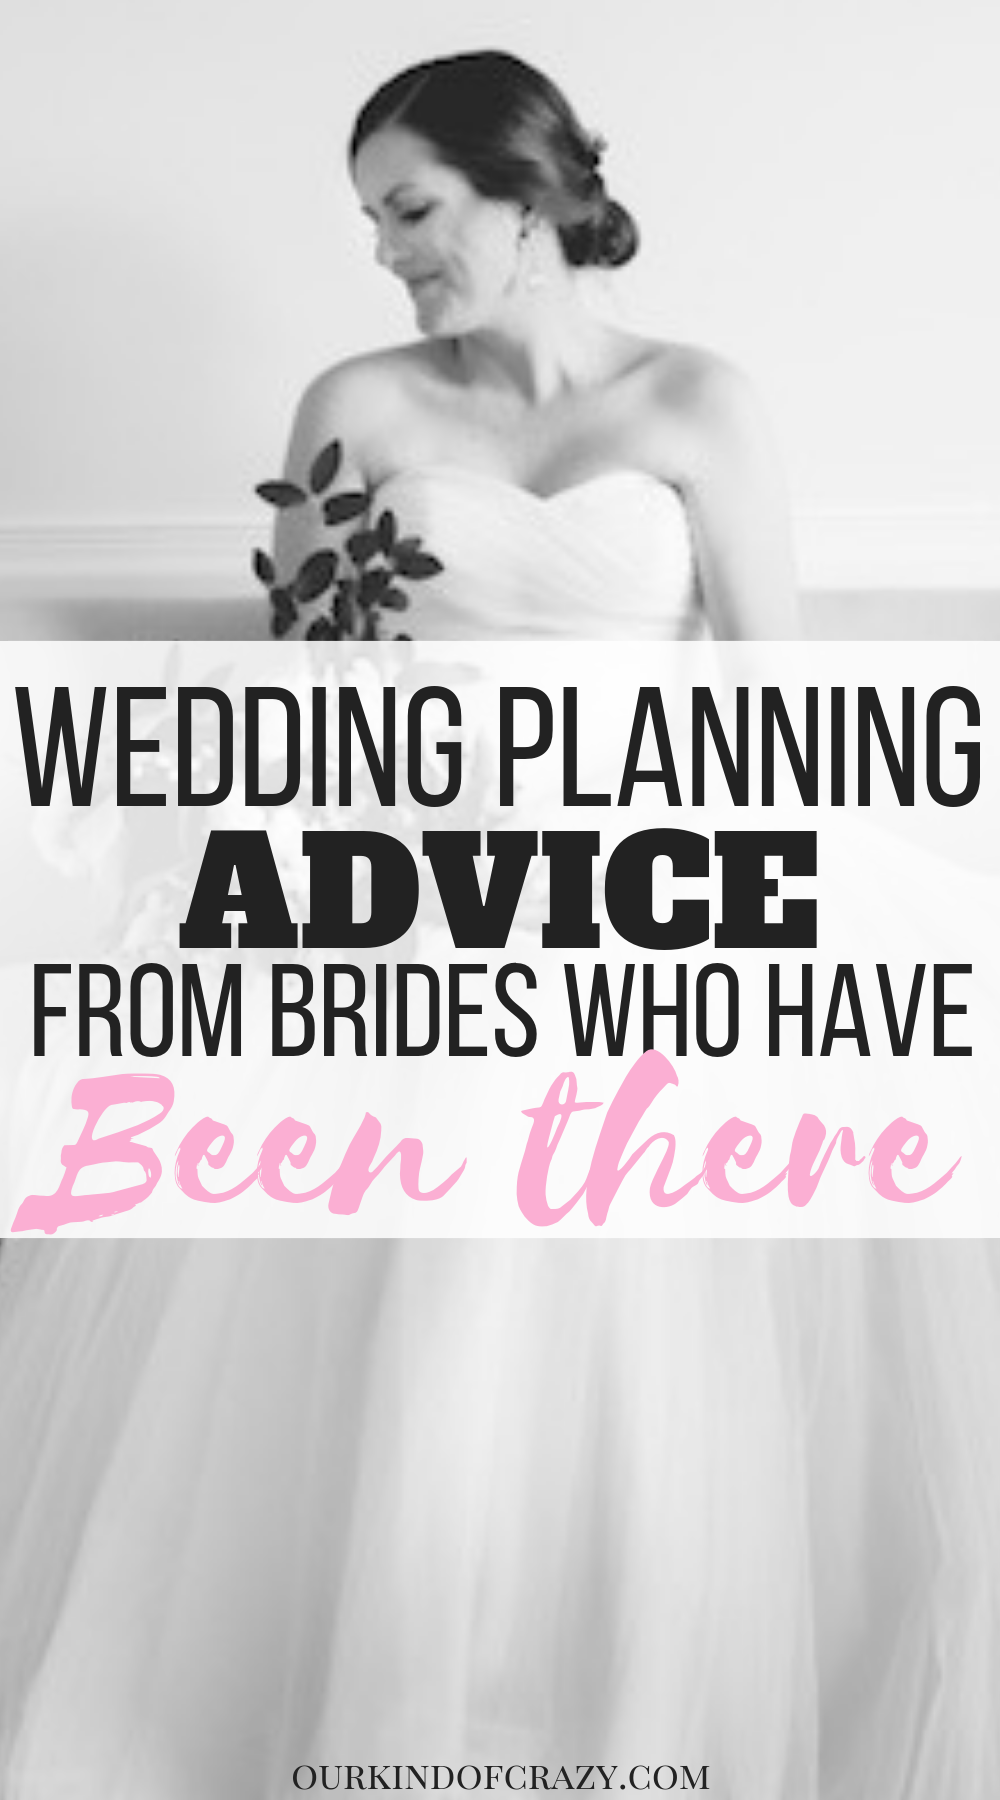 Wedding Planning Advice. How to have a fun wedding.